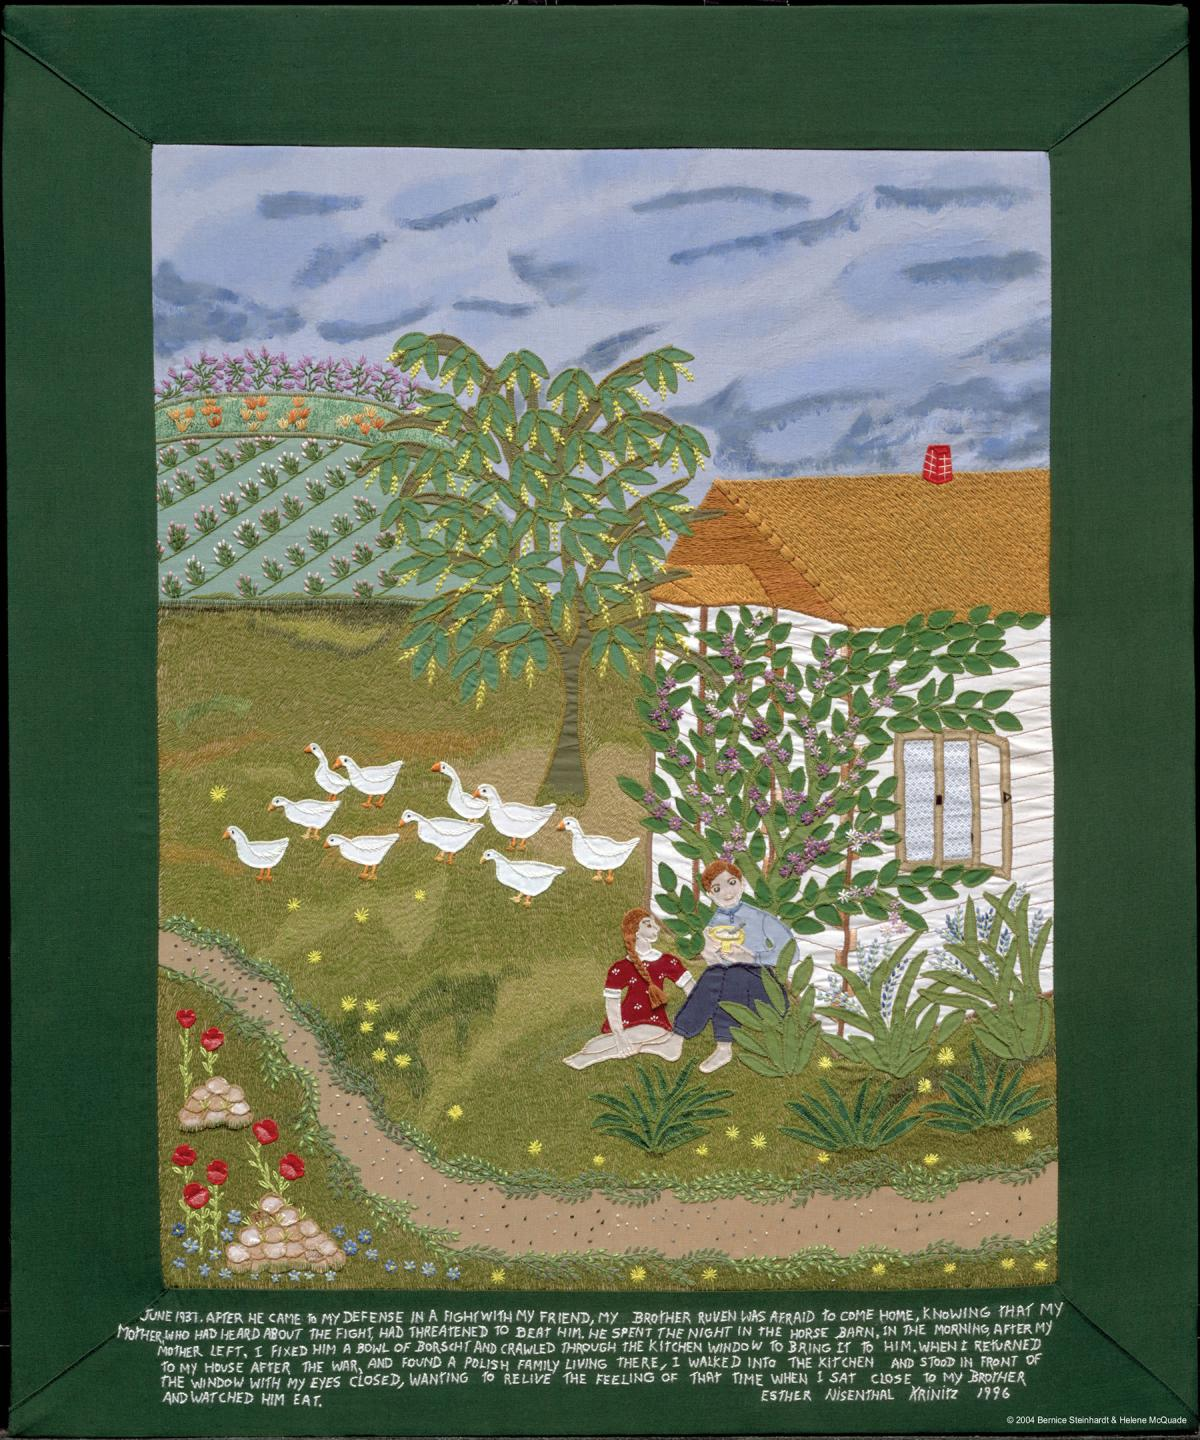 Quilt depicting a young woman and a boy sitting outside in a yard with birds